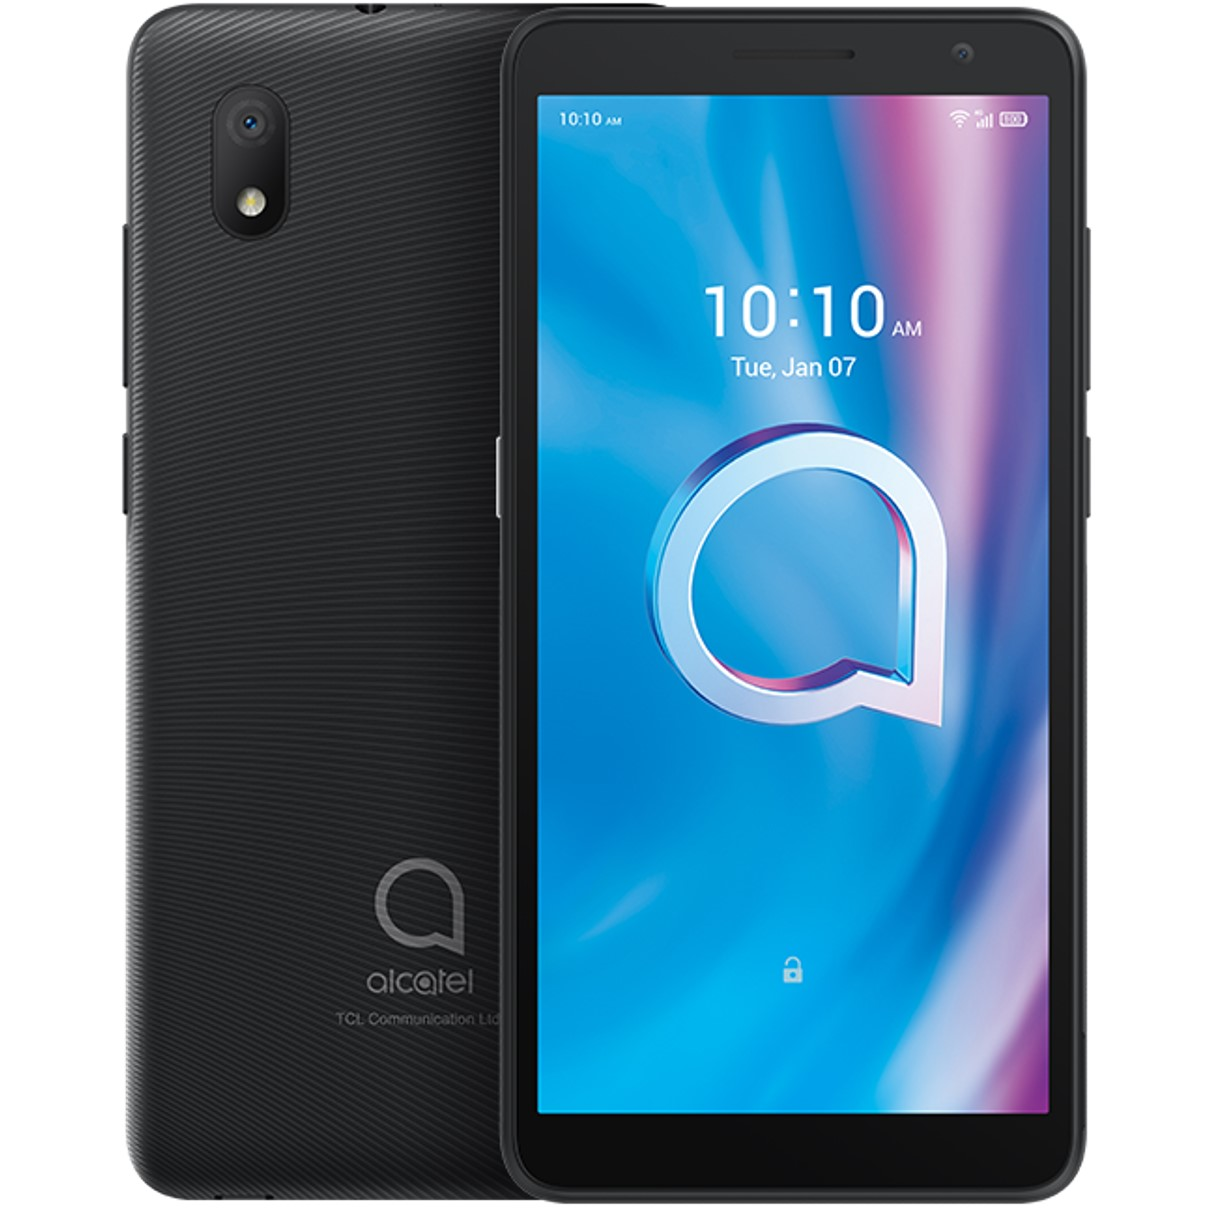 "TELEFONO MOVIL SMARTPHONE ALCATEL 1B PRIME BLACK/ 5.5""/ QUAD CORE/ 16GB ROM/ 2GB RAM/ 8MPX - 5MPX/ 4G/ DUAL SIM"